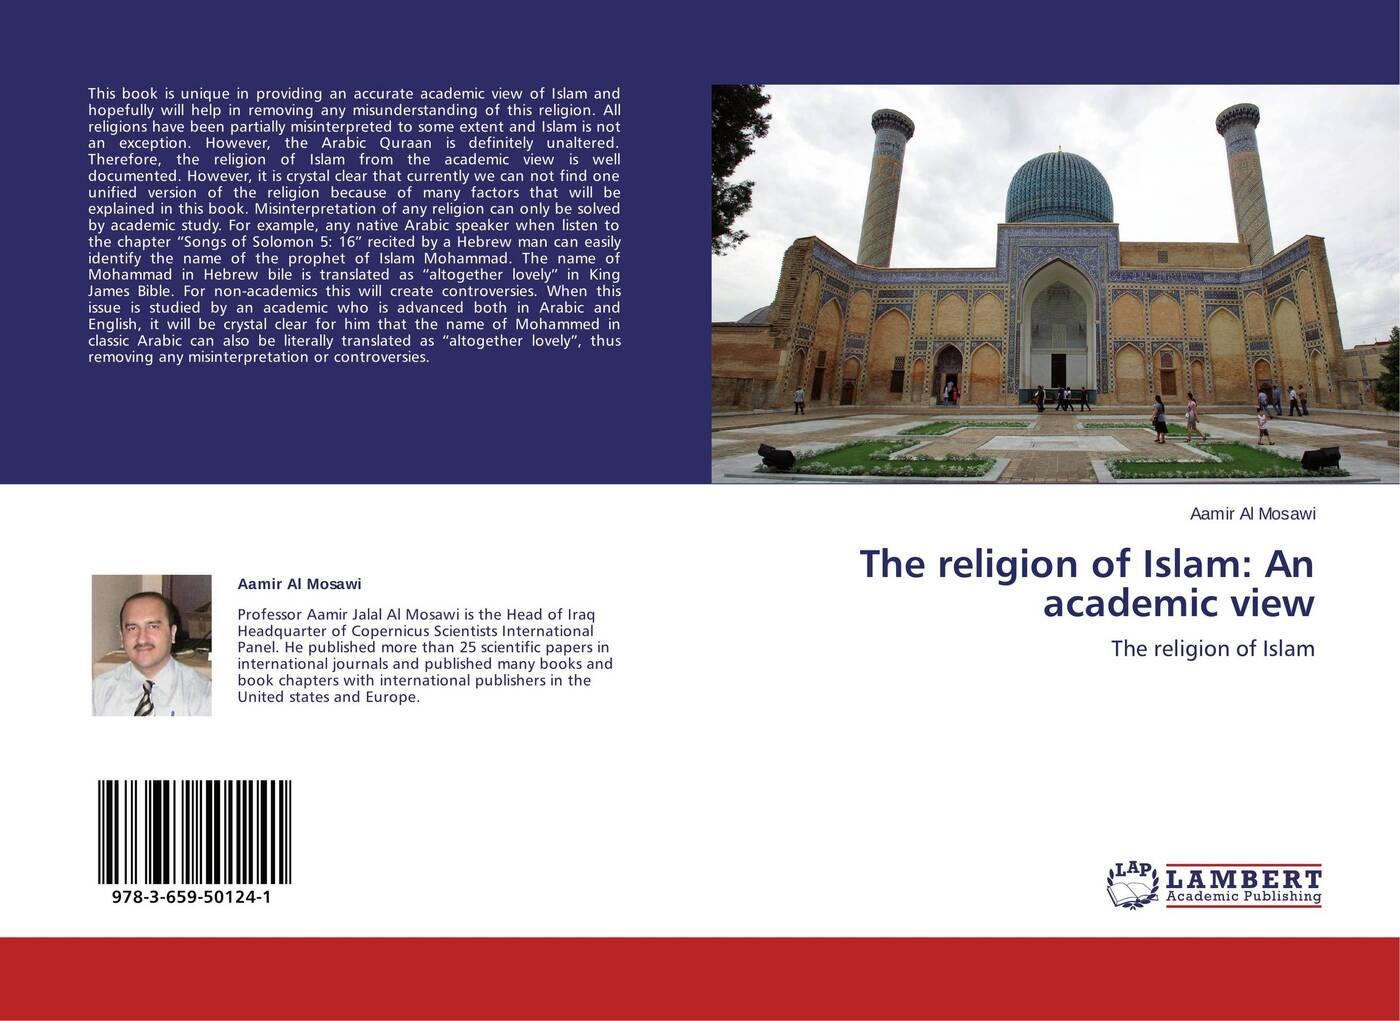 Aamir Al Mosawi The religion of Islam: An academic view